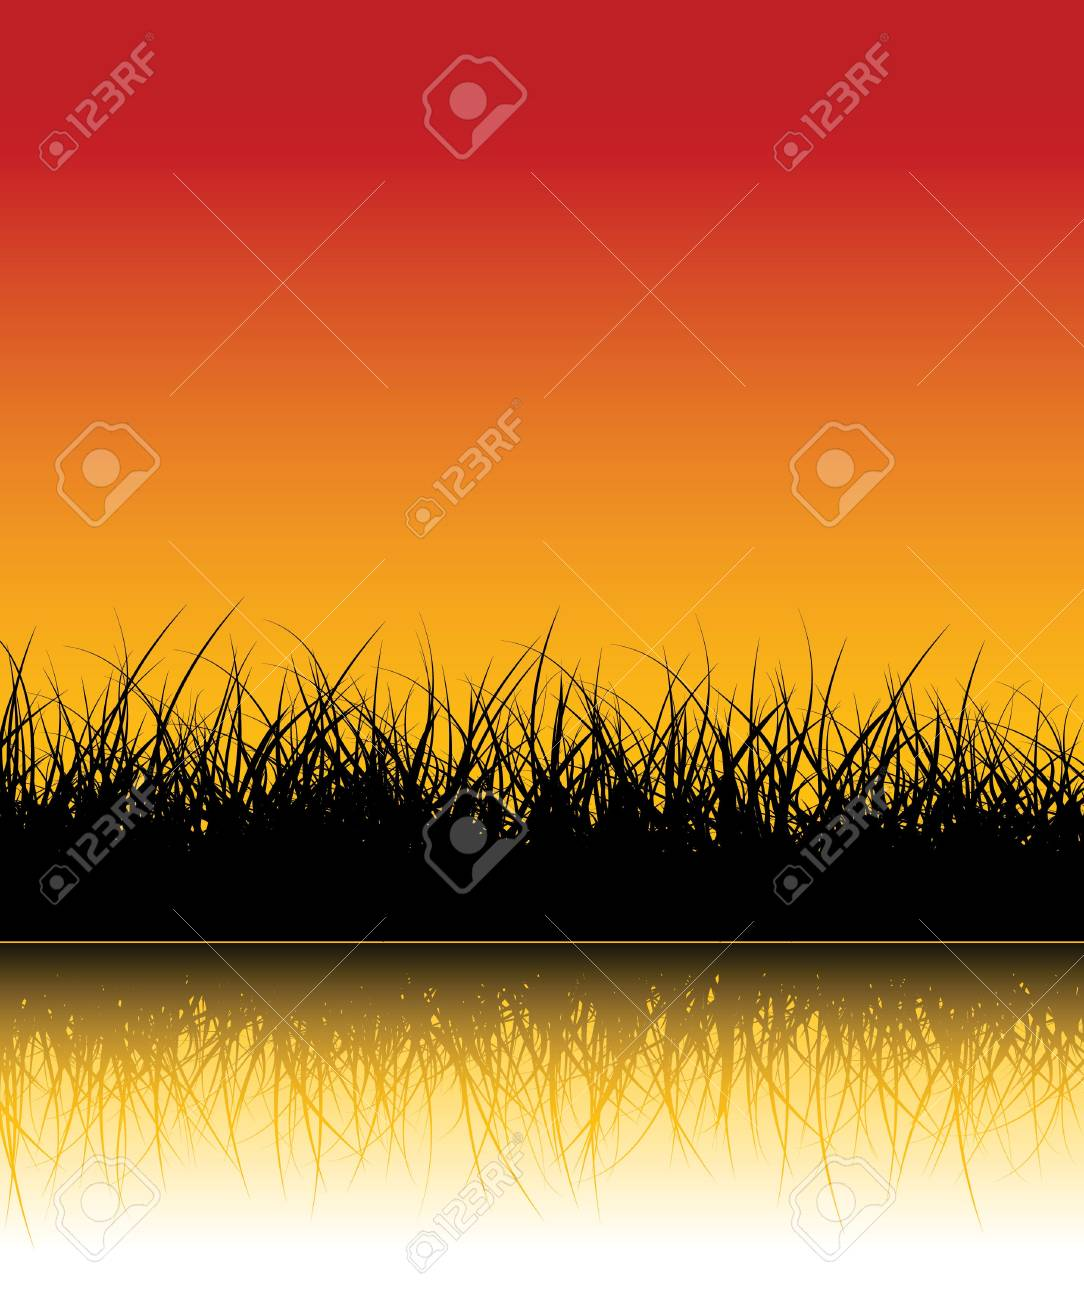 Vector grass background with reflections in the water Stock Photo - 2136499